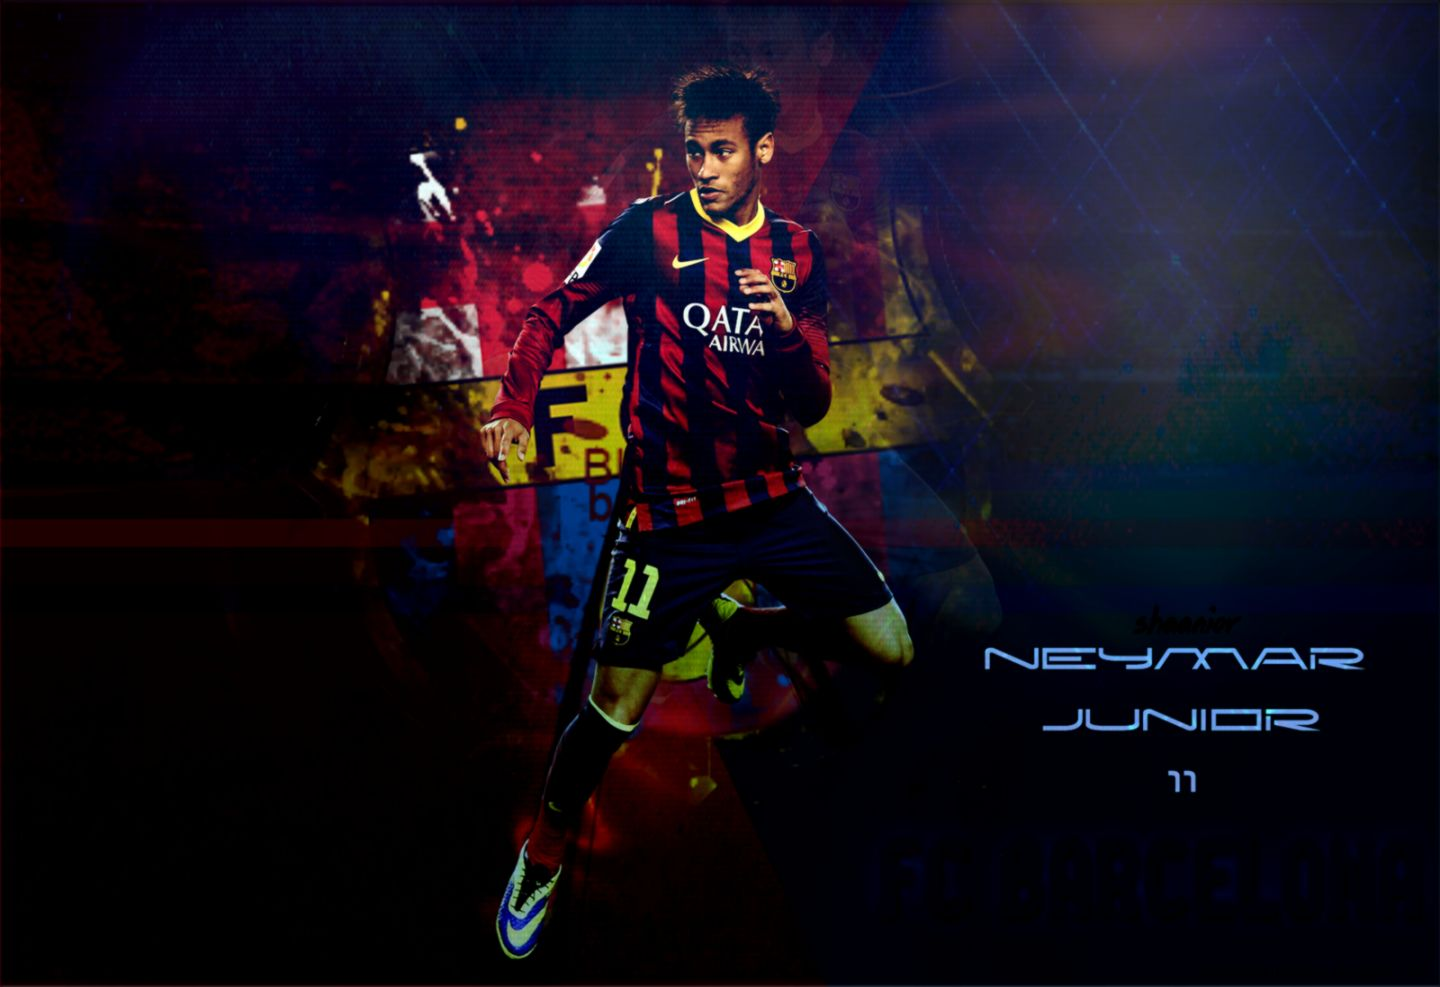 View Original Size Neymar Best HD Wallpaper Android 4098 Computer Image Source From This